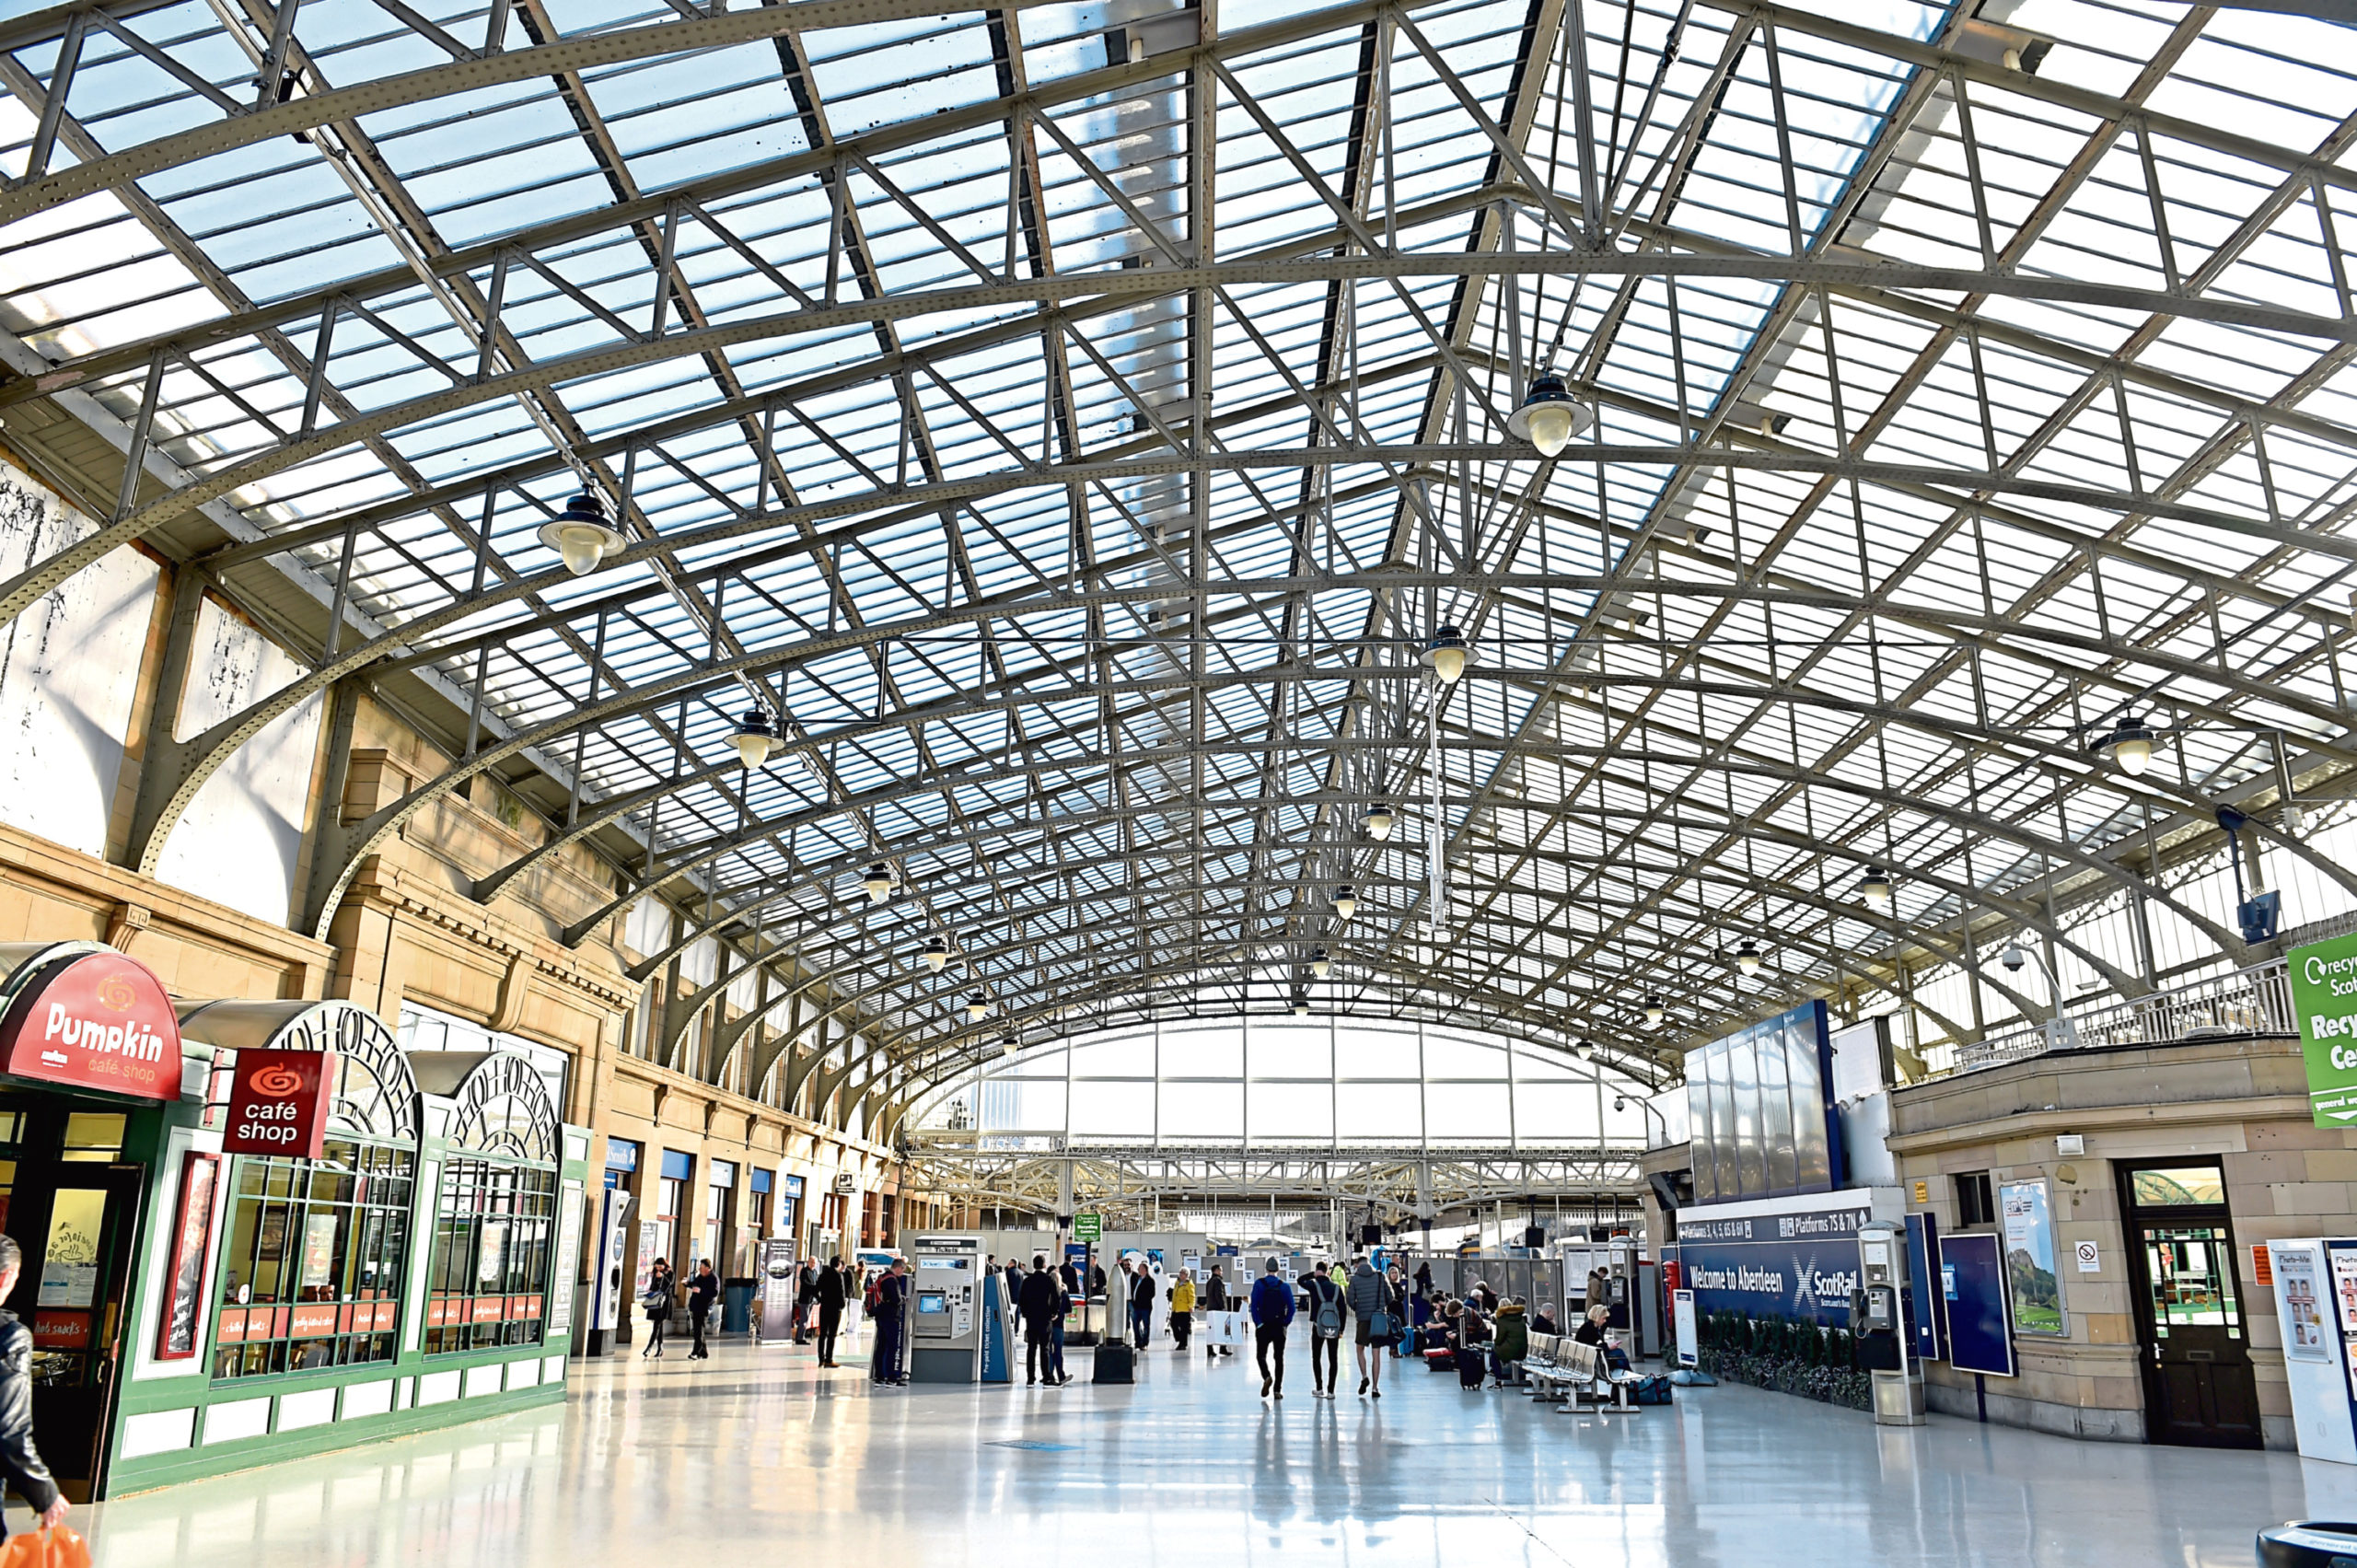 The works will be carried out at Aberdeen train station next month